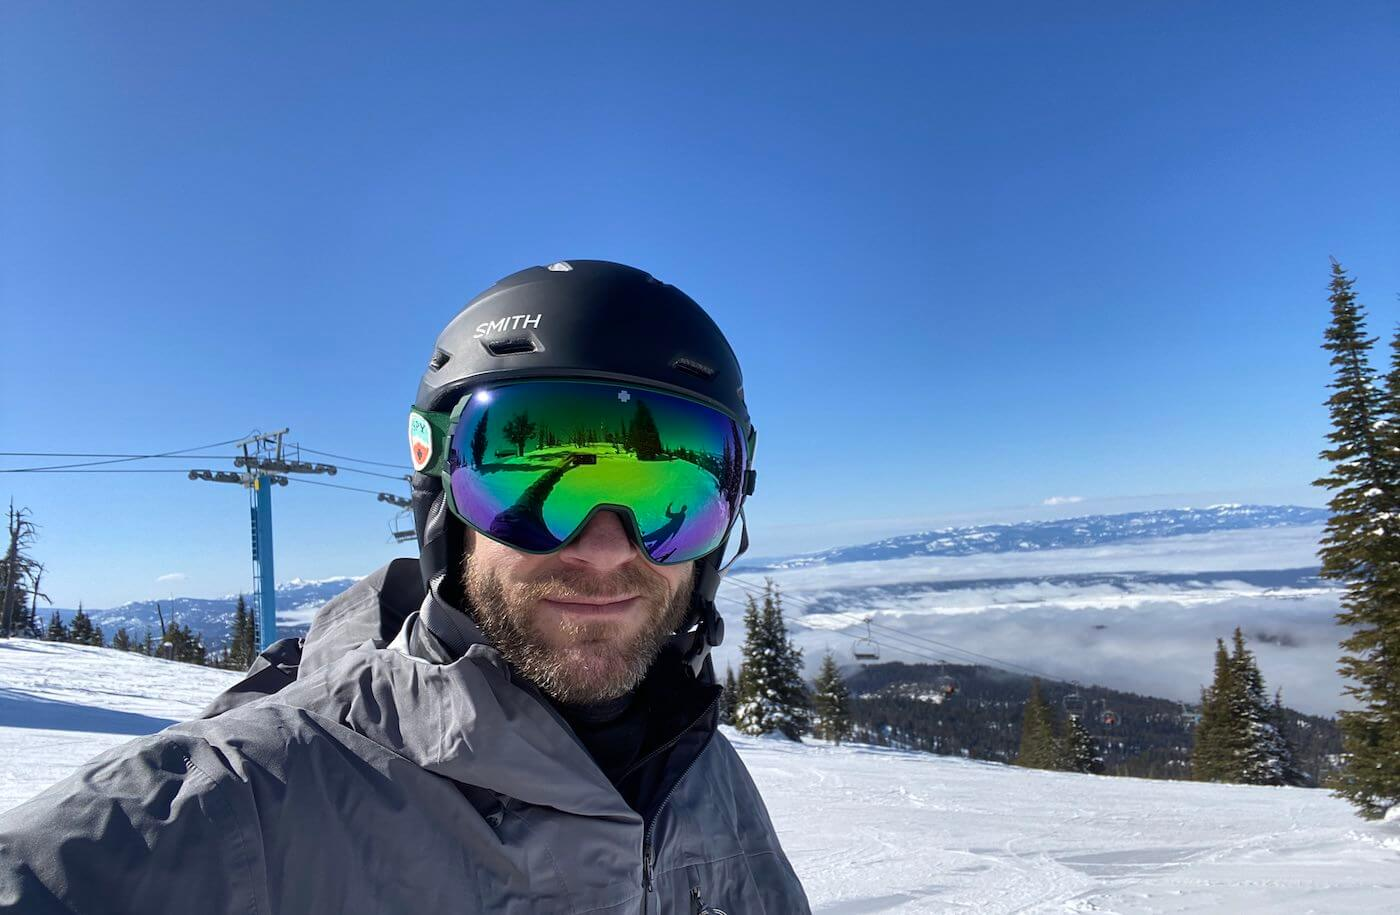 This photo shows a skier wearing the SPY Legacy Snow Goggle while outside on the ski slopes.